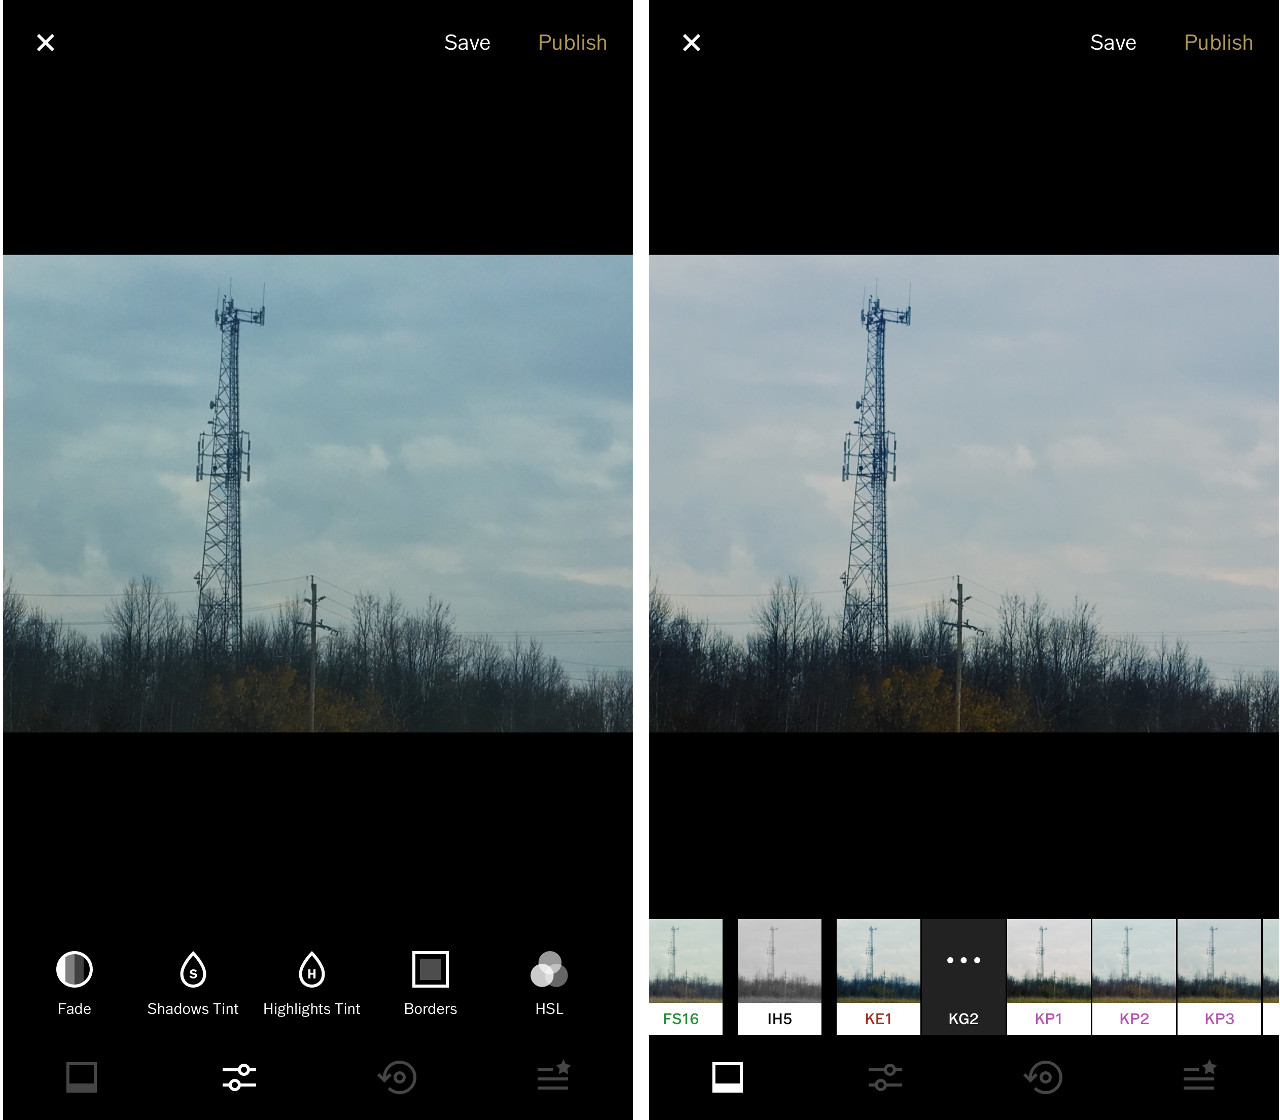 Editing and adding filters to photos in VSCO